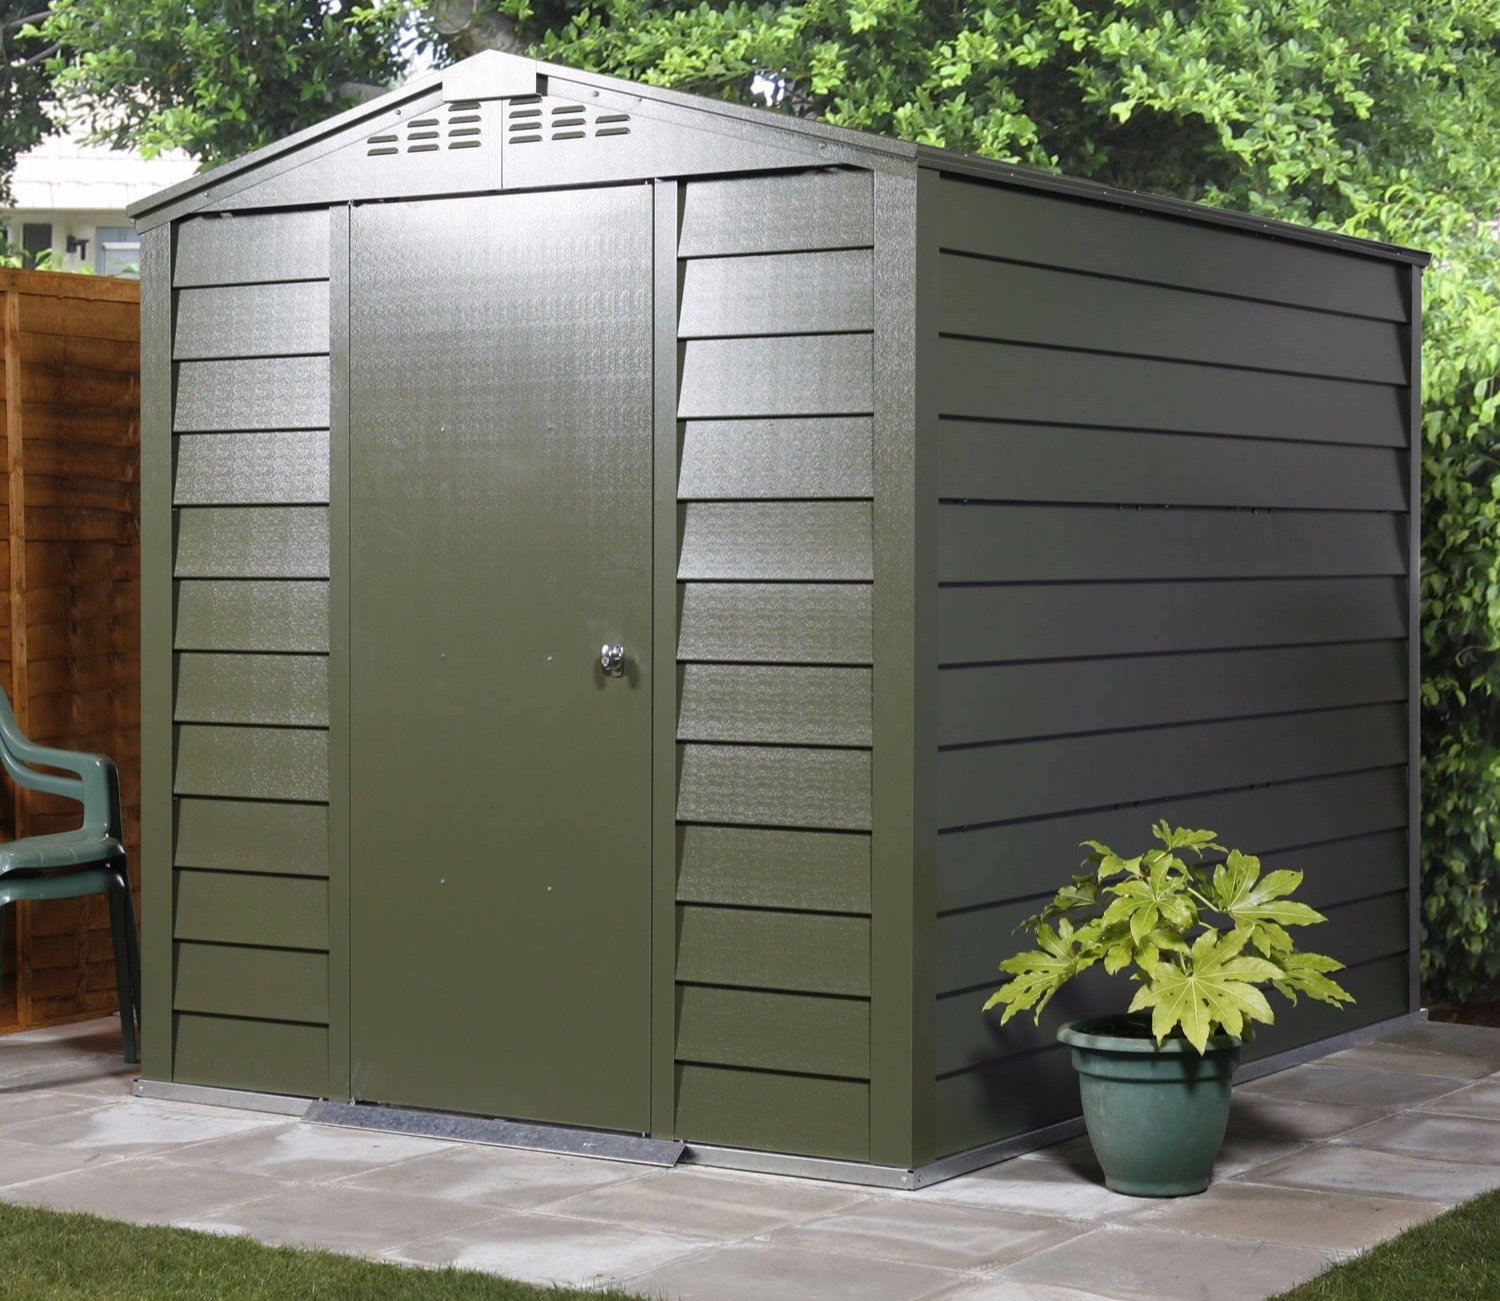 A Trimetals Titan green metal shed.